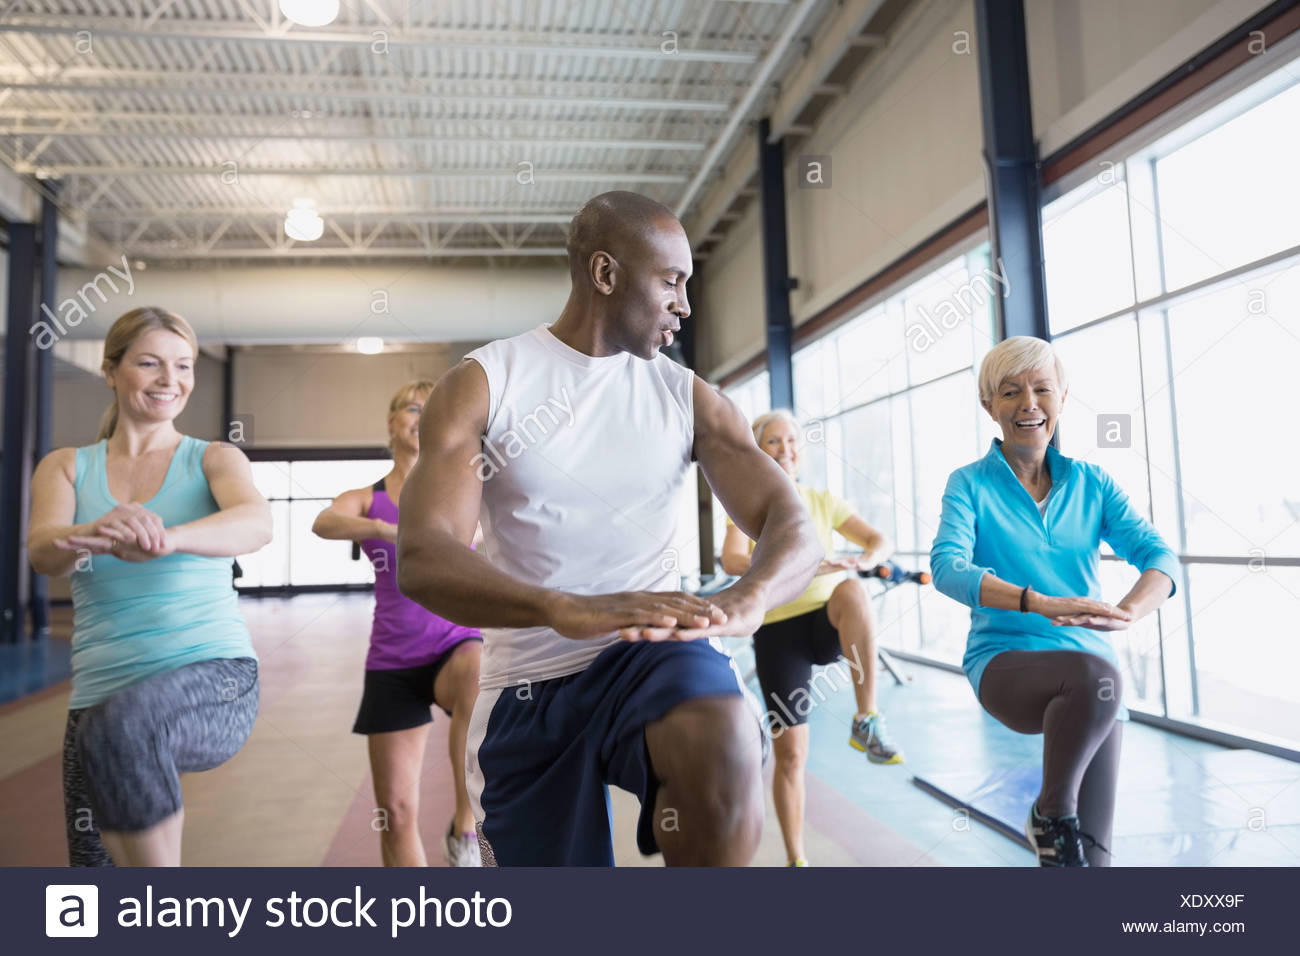 Personal trainer guiding women at gym - Stock Image